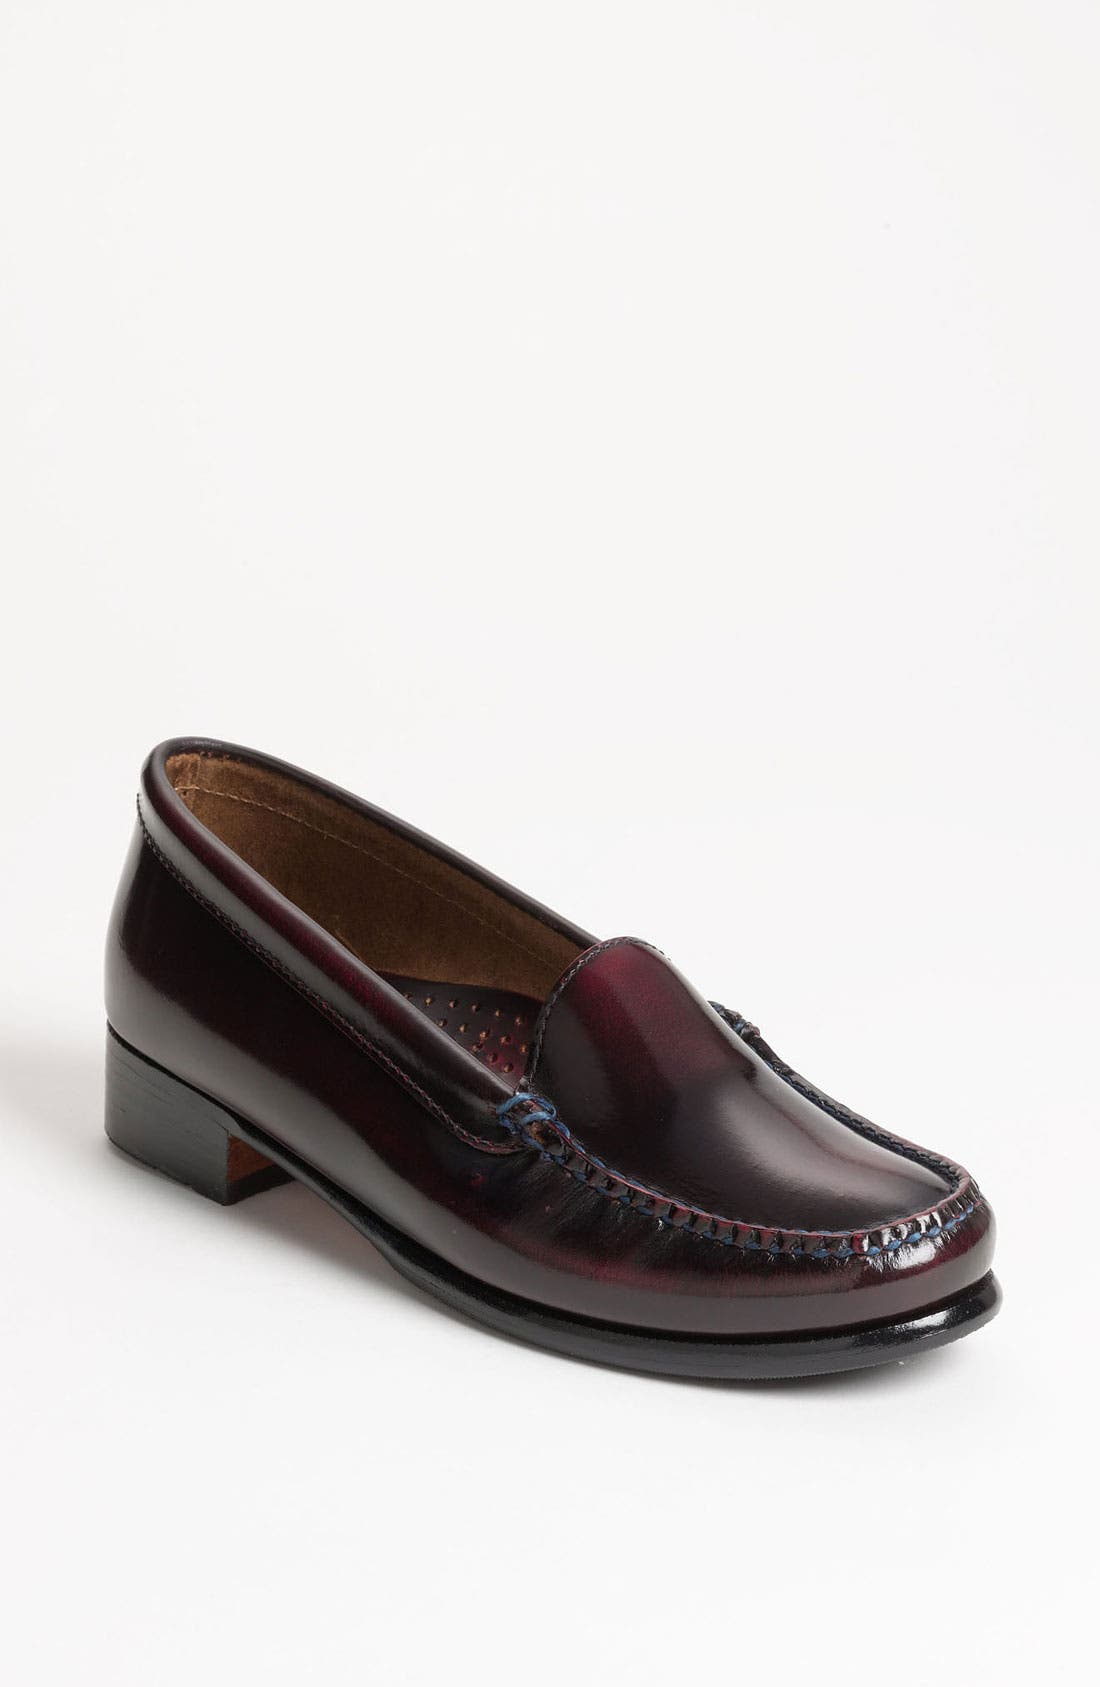 Main Image - G.H. Bass & Co. 'Madison' Loafer